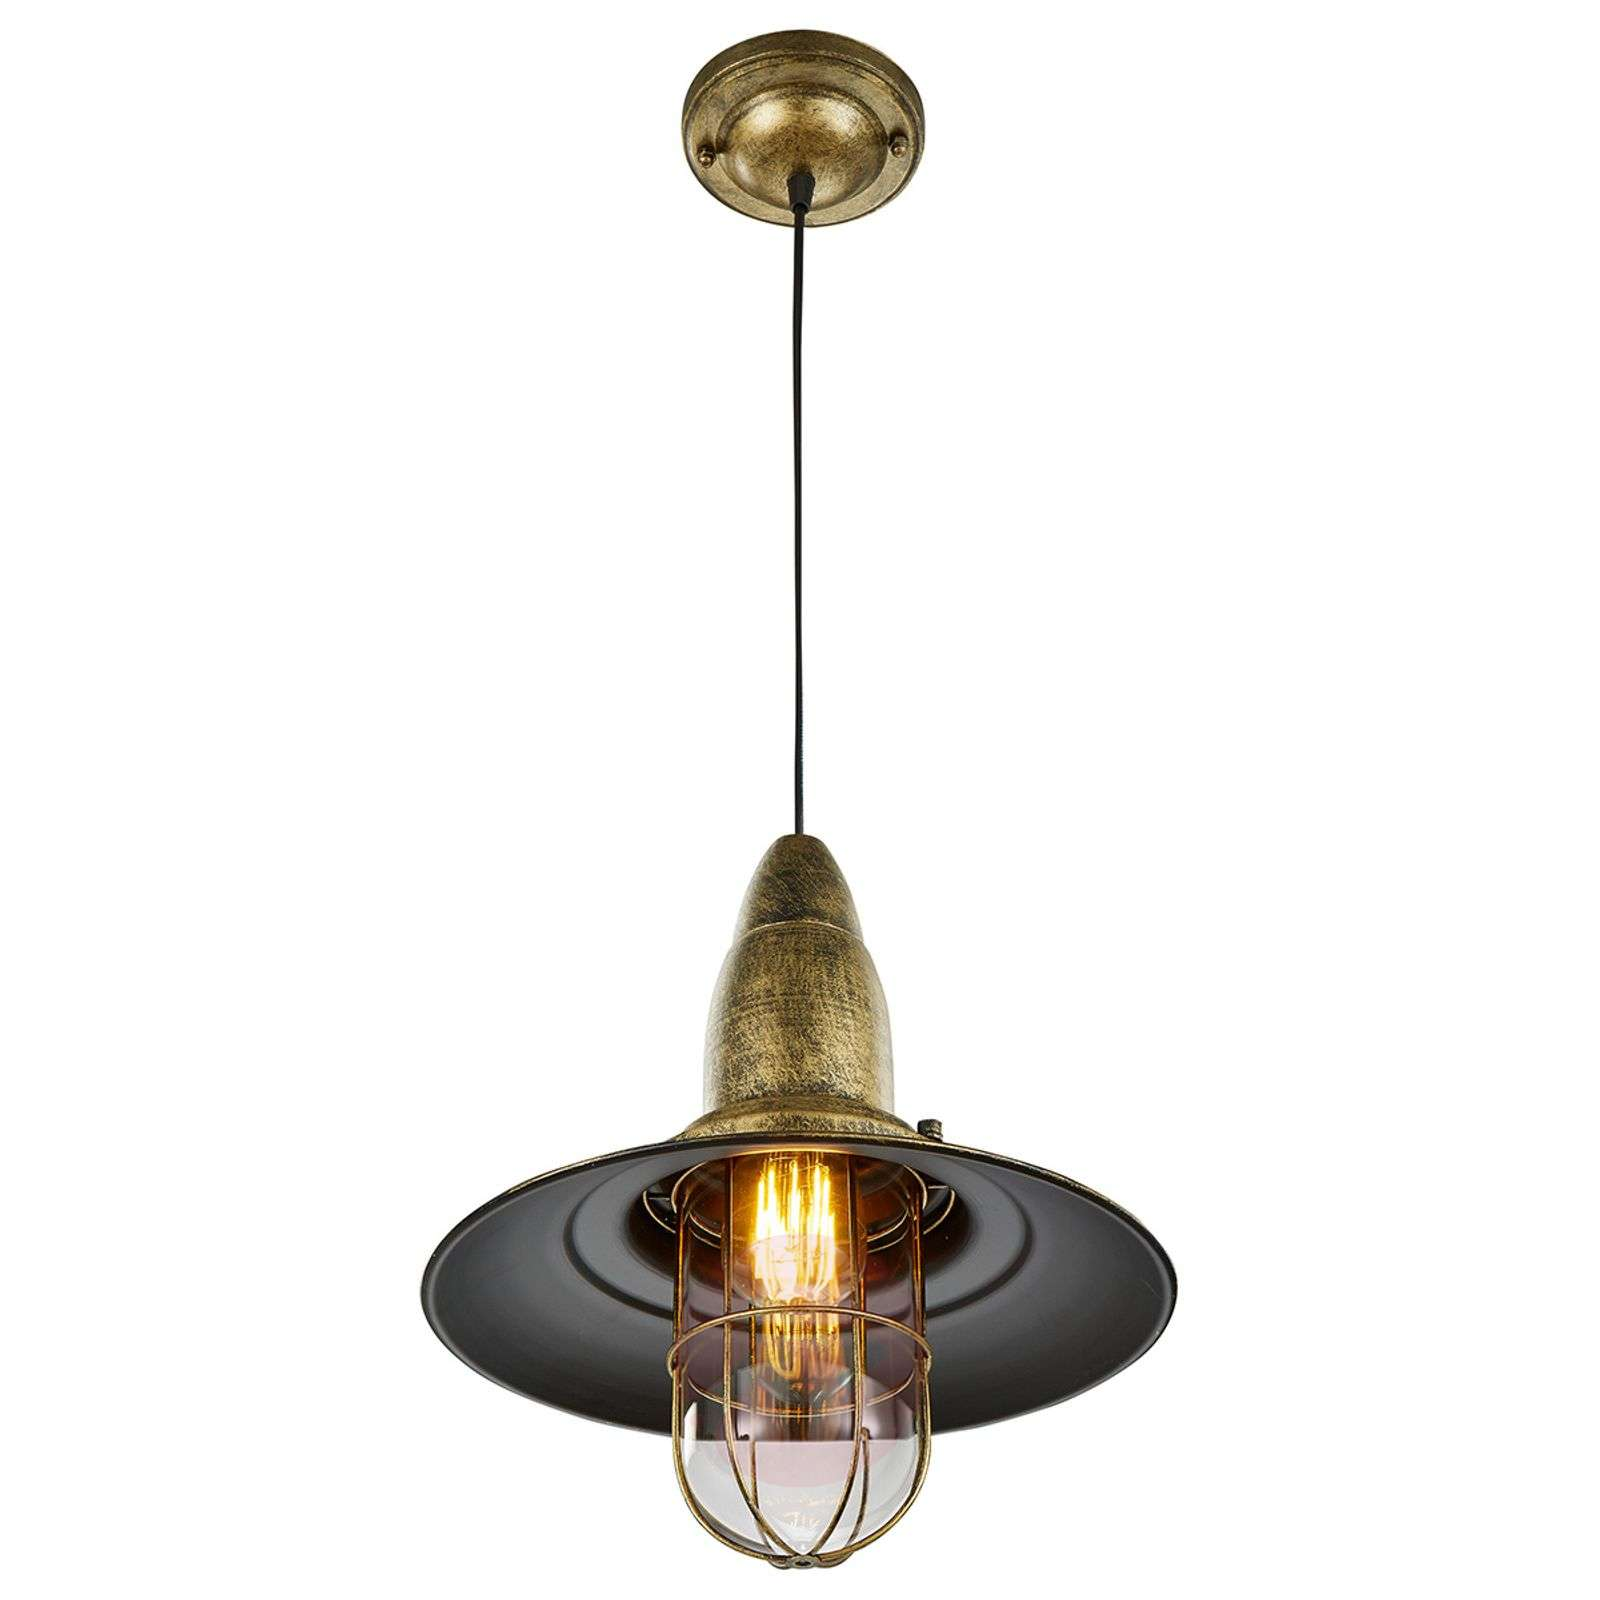 Kitchen Fisherman Pendant Light, Antique-brass